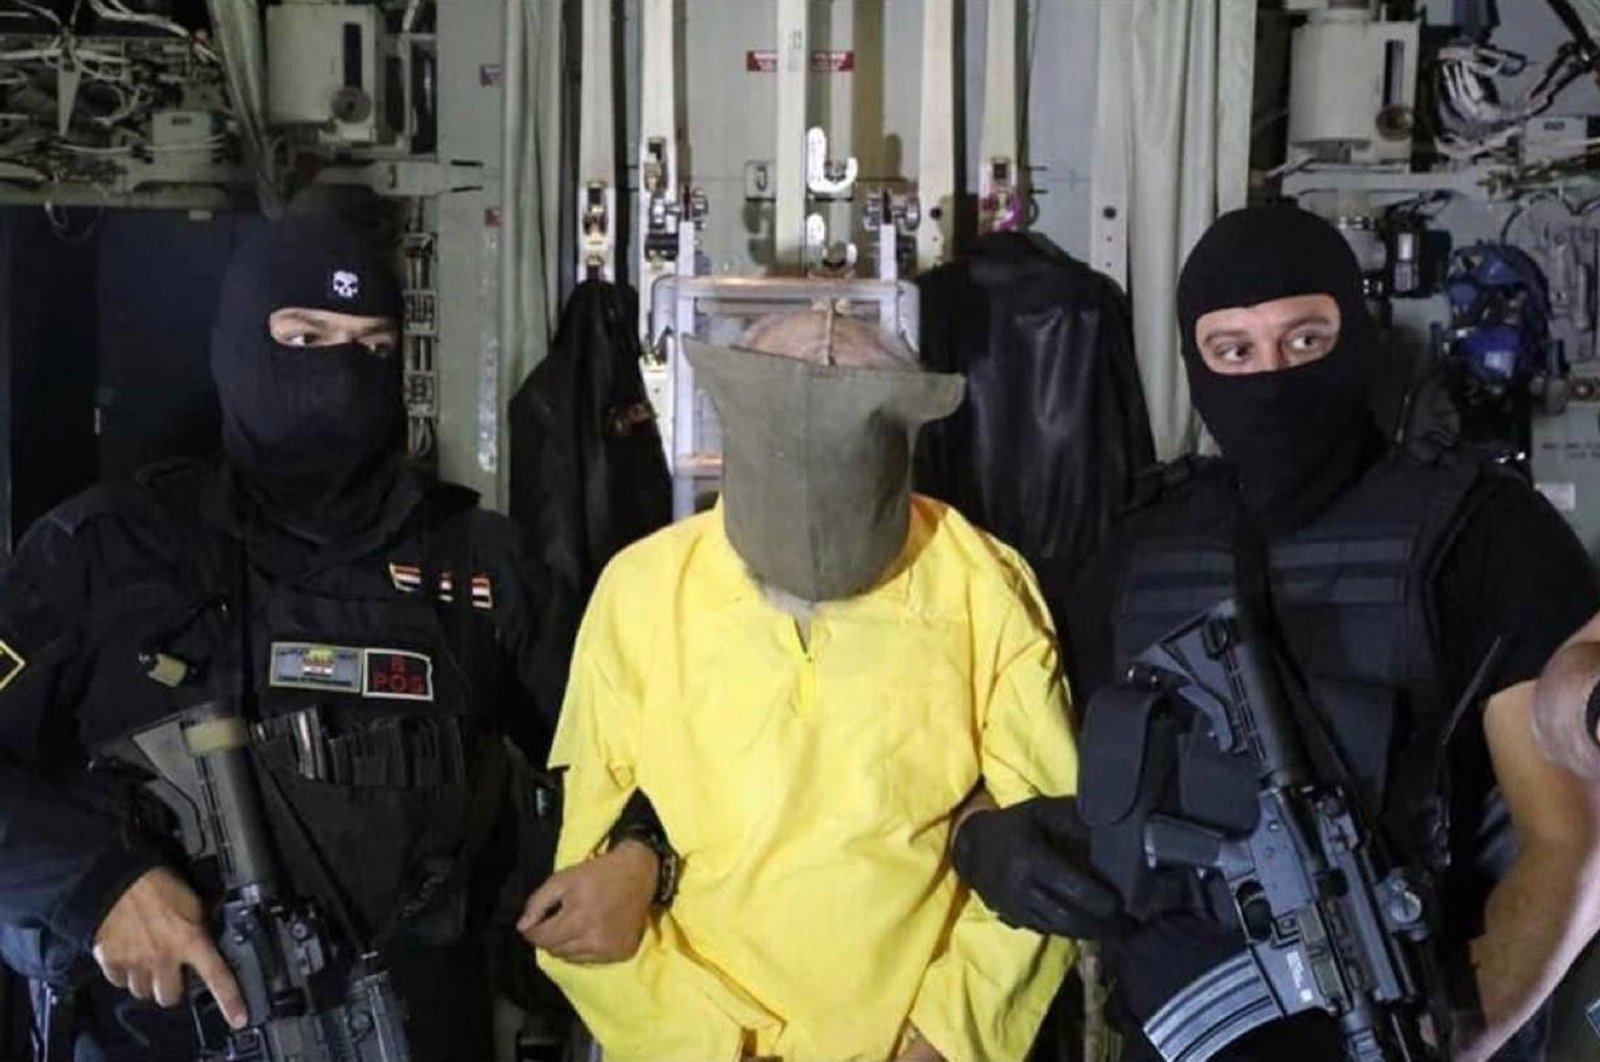 Sami Jasim, a general supervisor of the financial files for Daesh, is arrested by Iraqi security forces, during a special security operation in an unnamed country, Oct. 11, 2021. (EPA Photo)